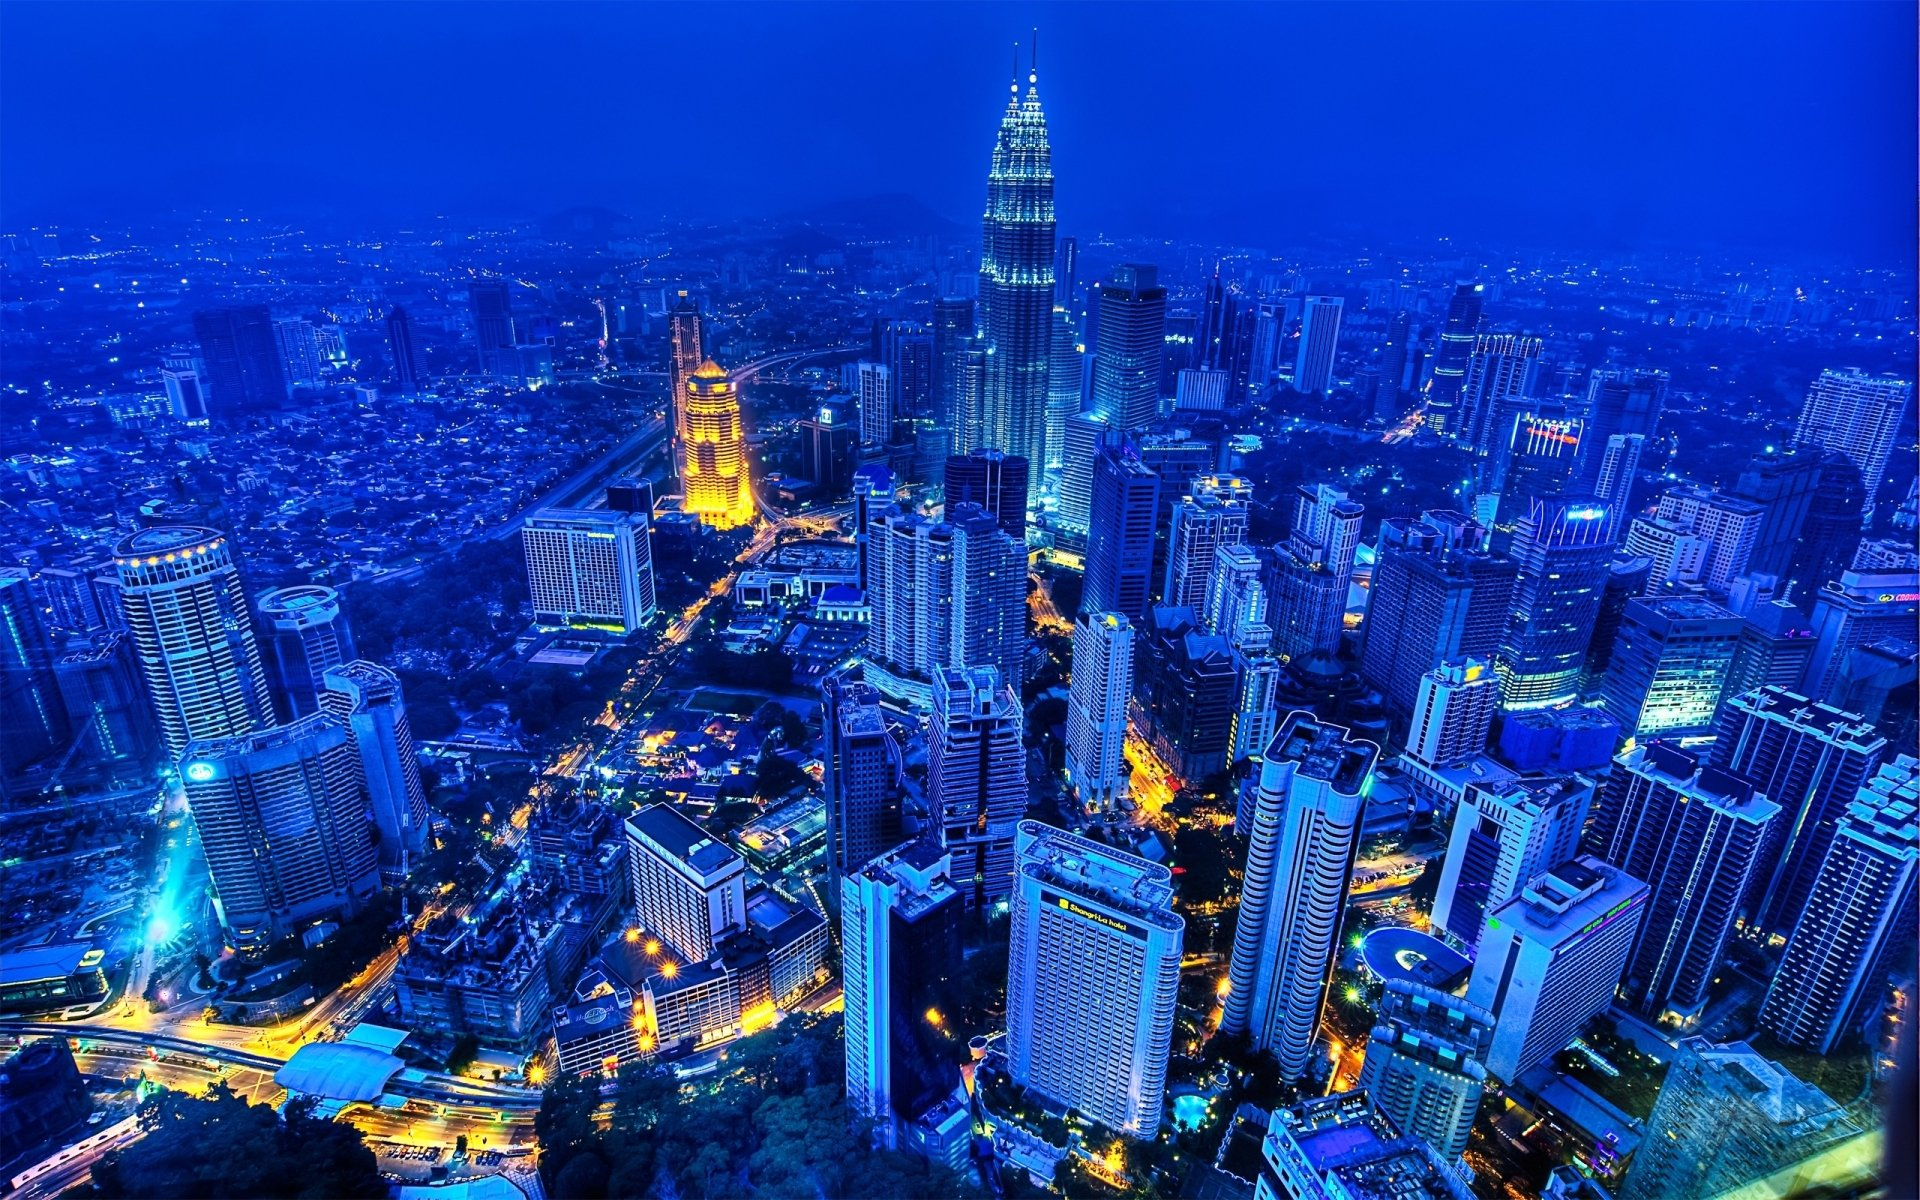 Man Made - Kuala Lumpur  City Town Metropolis Building Skyscraper Sky Cloud Cityscape Scenic Architecture Night Light HDR Wallpaper